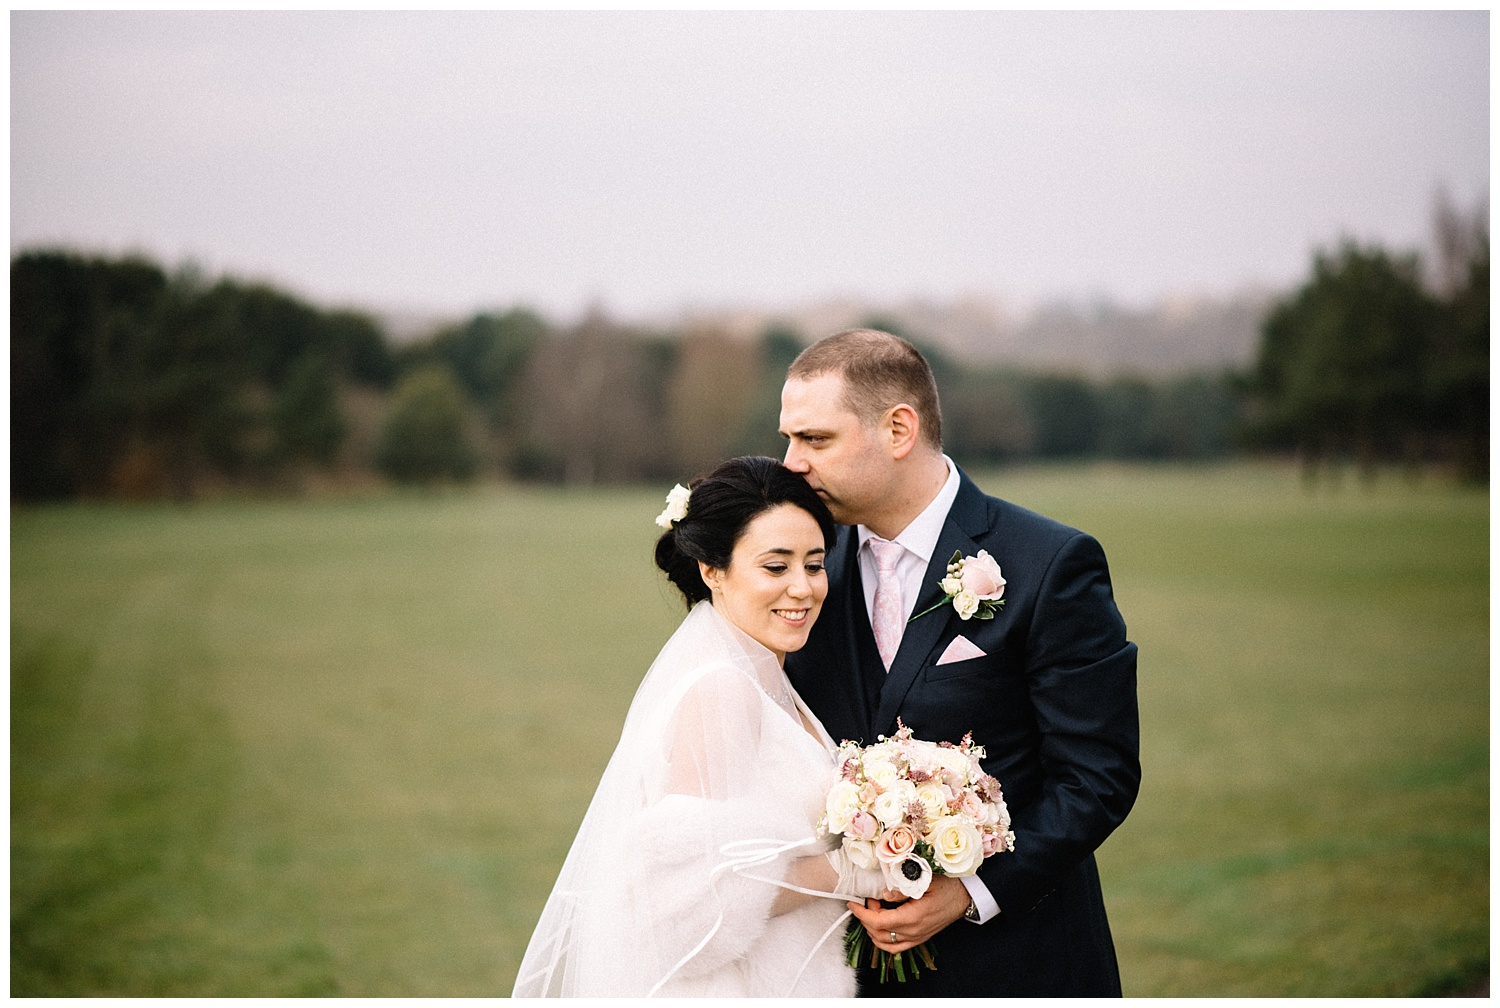 Essendon country club wedding of Emily and Andrew-51.jpg